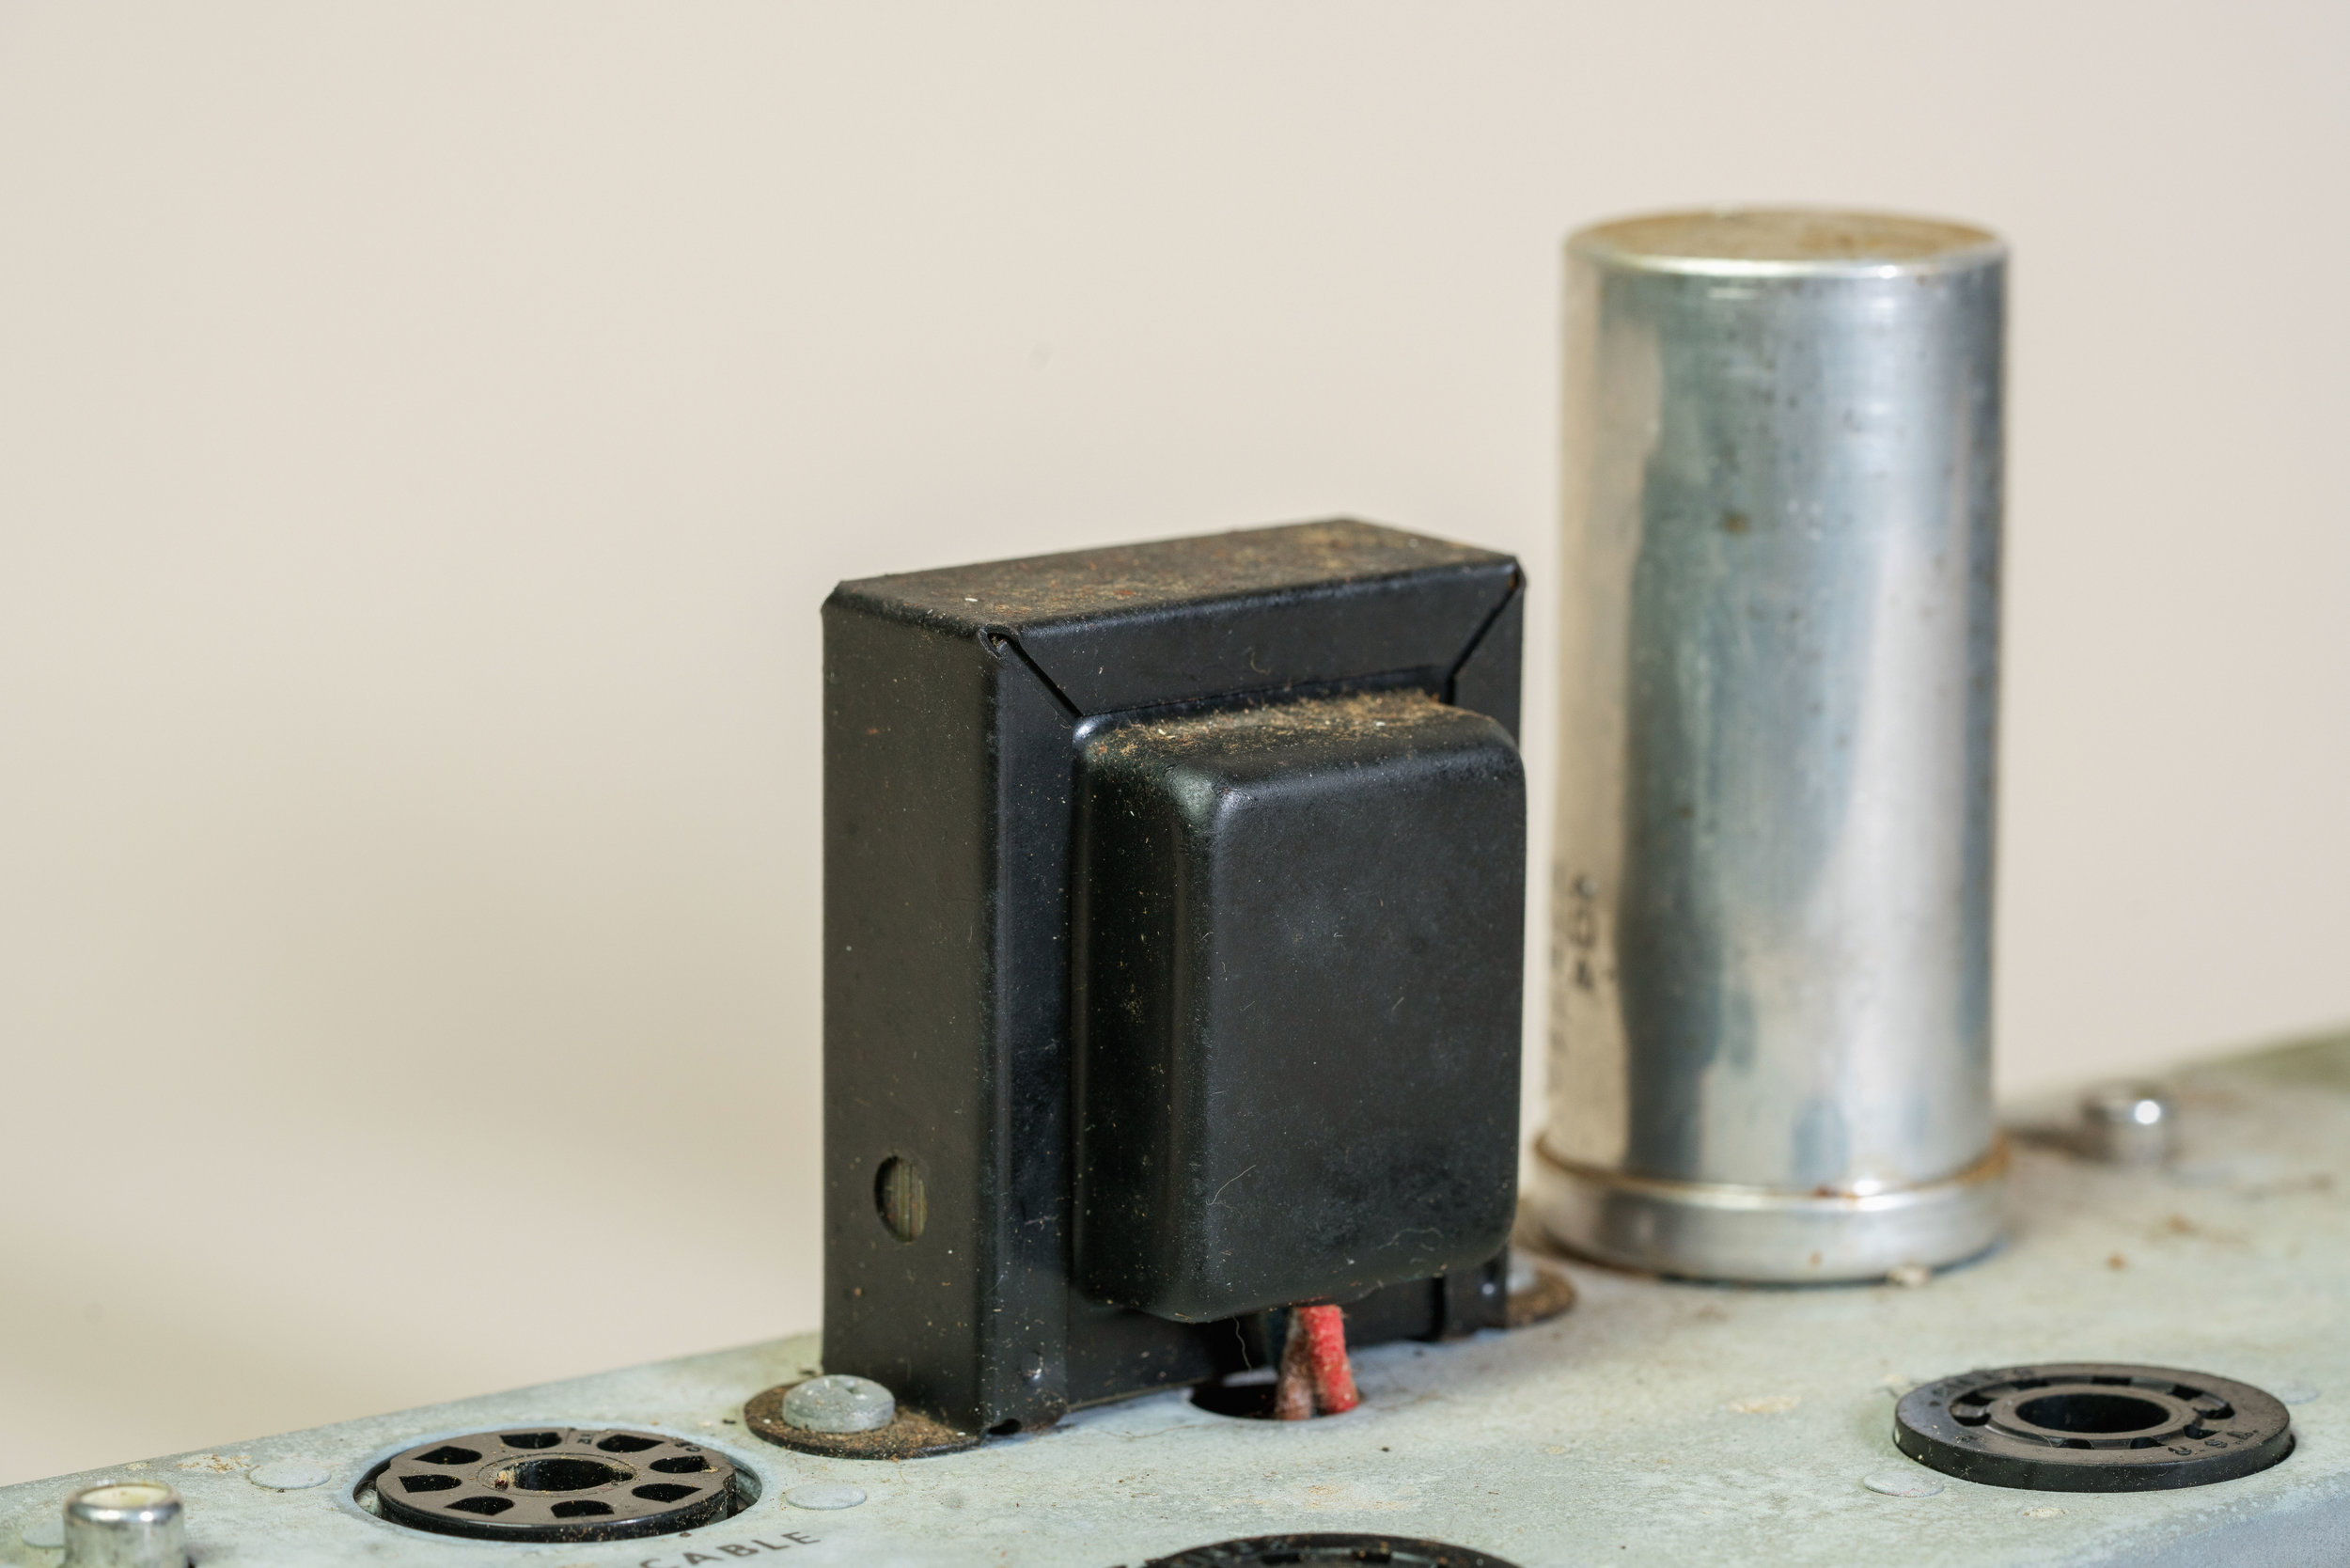 The capacitor can in a Wurlitzer 145 amplifier.